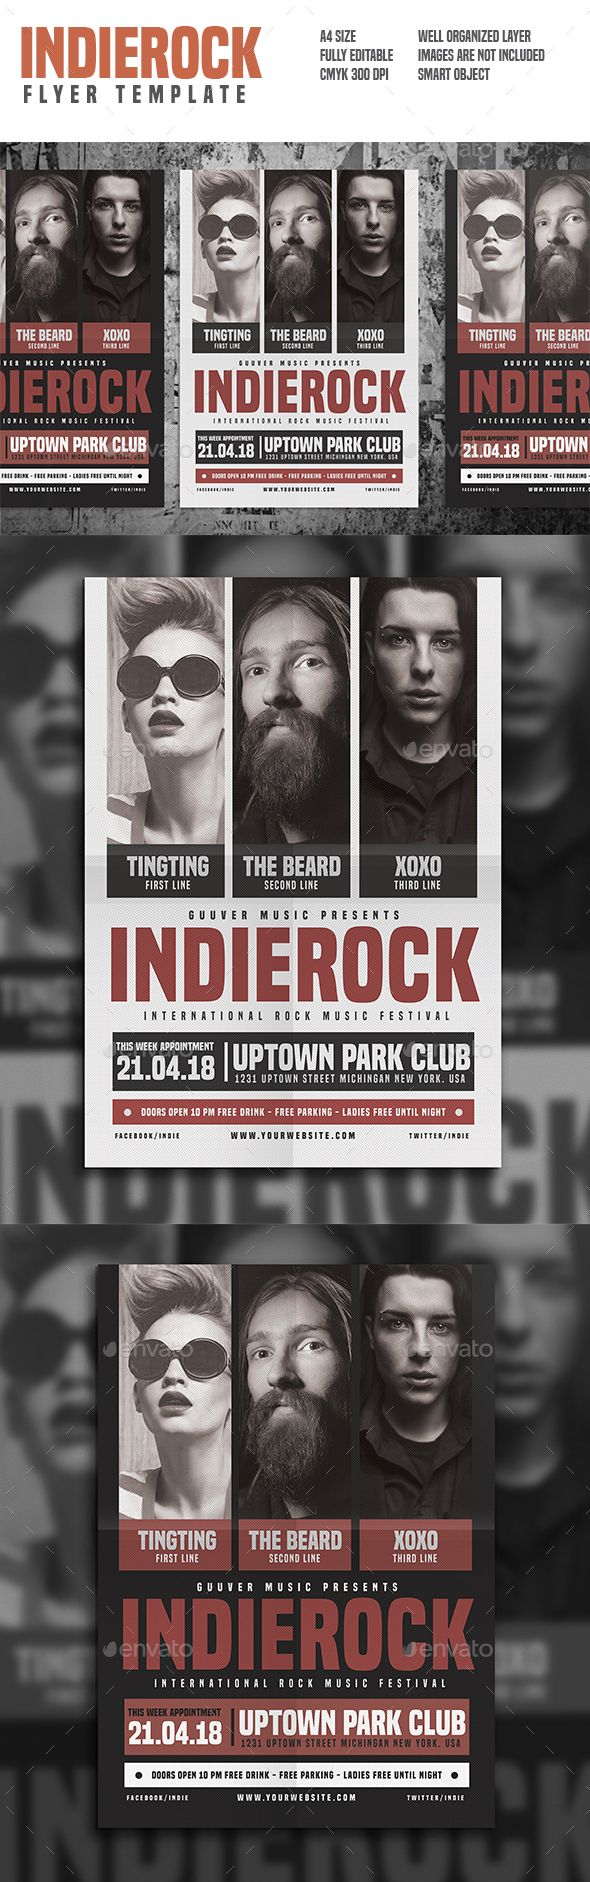 Indie Rock Flyer | Event flyers, Indie and Flyer template